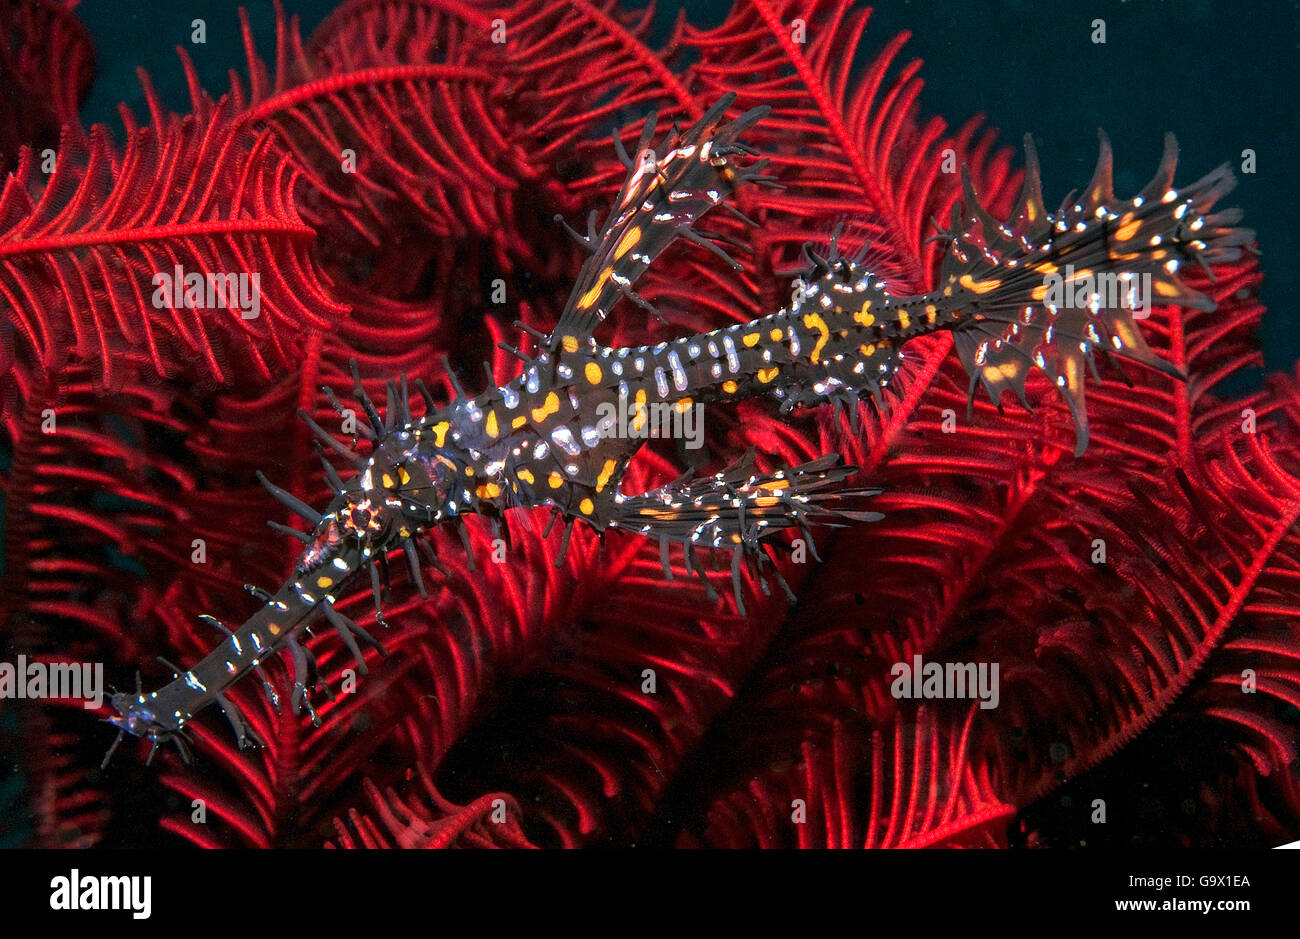 Harlequin Ghostpipefish, Ornate ghostpipefish / (Solenostomus paradoxus) - Stock Image